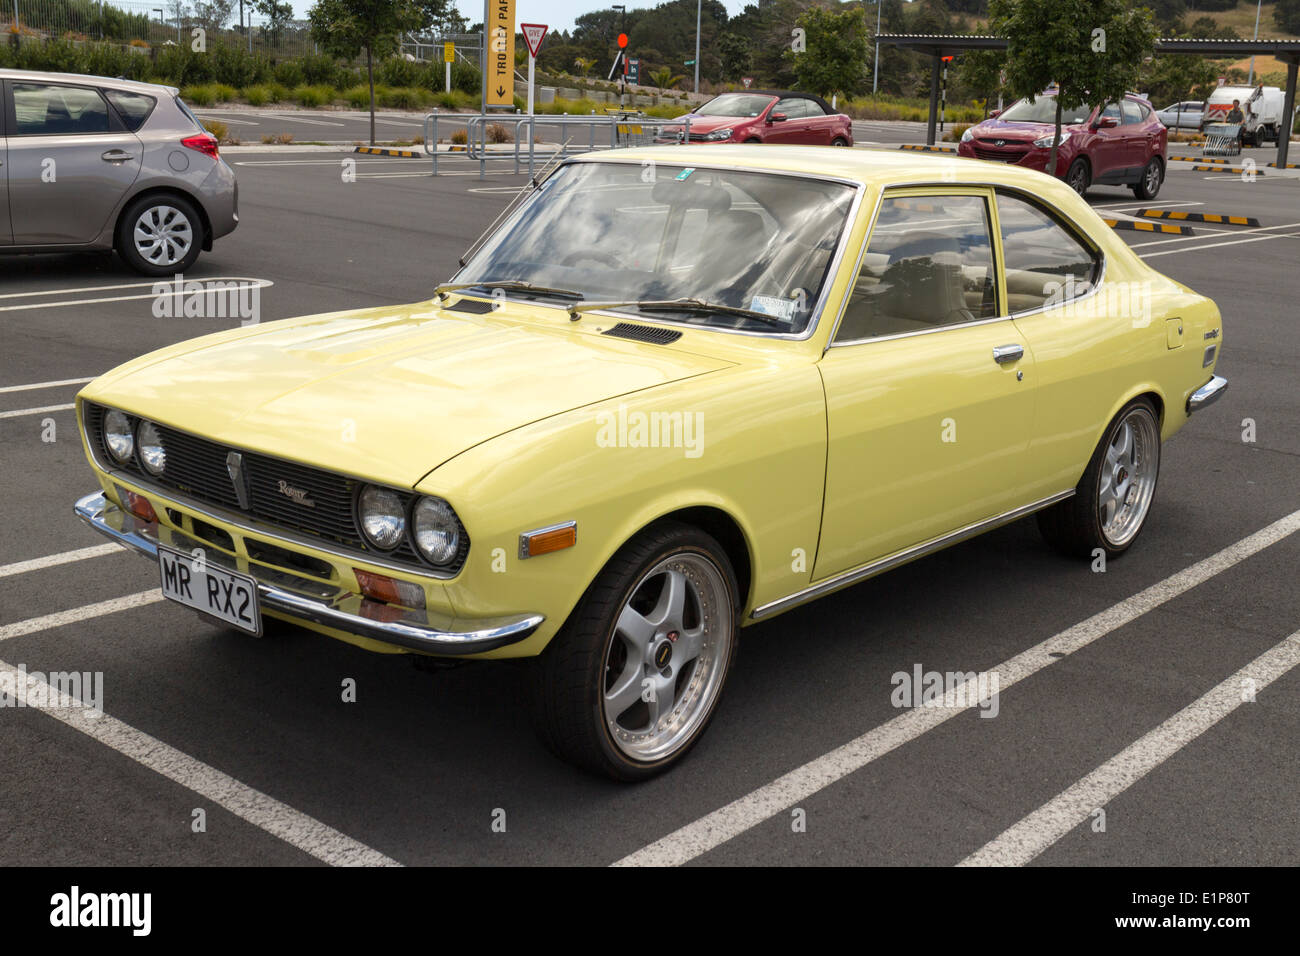 New Zealand 2013 2014 Mazda Rx2 Stock Photo 69945368 Alamy